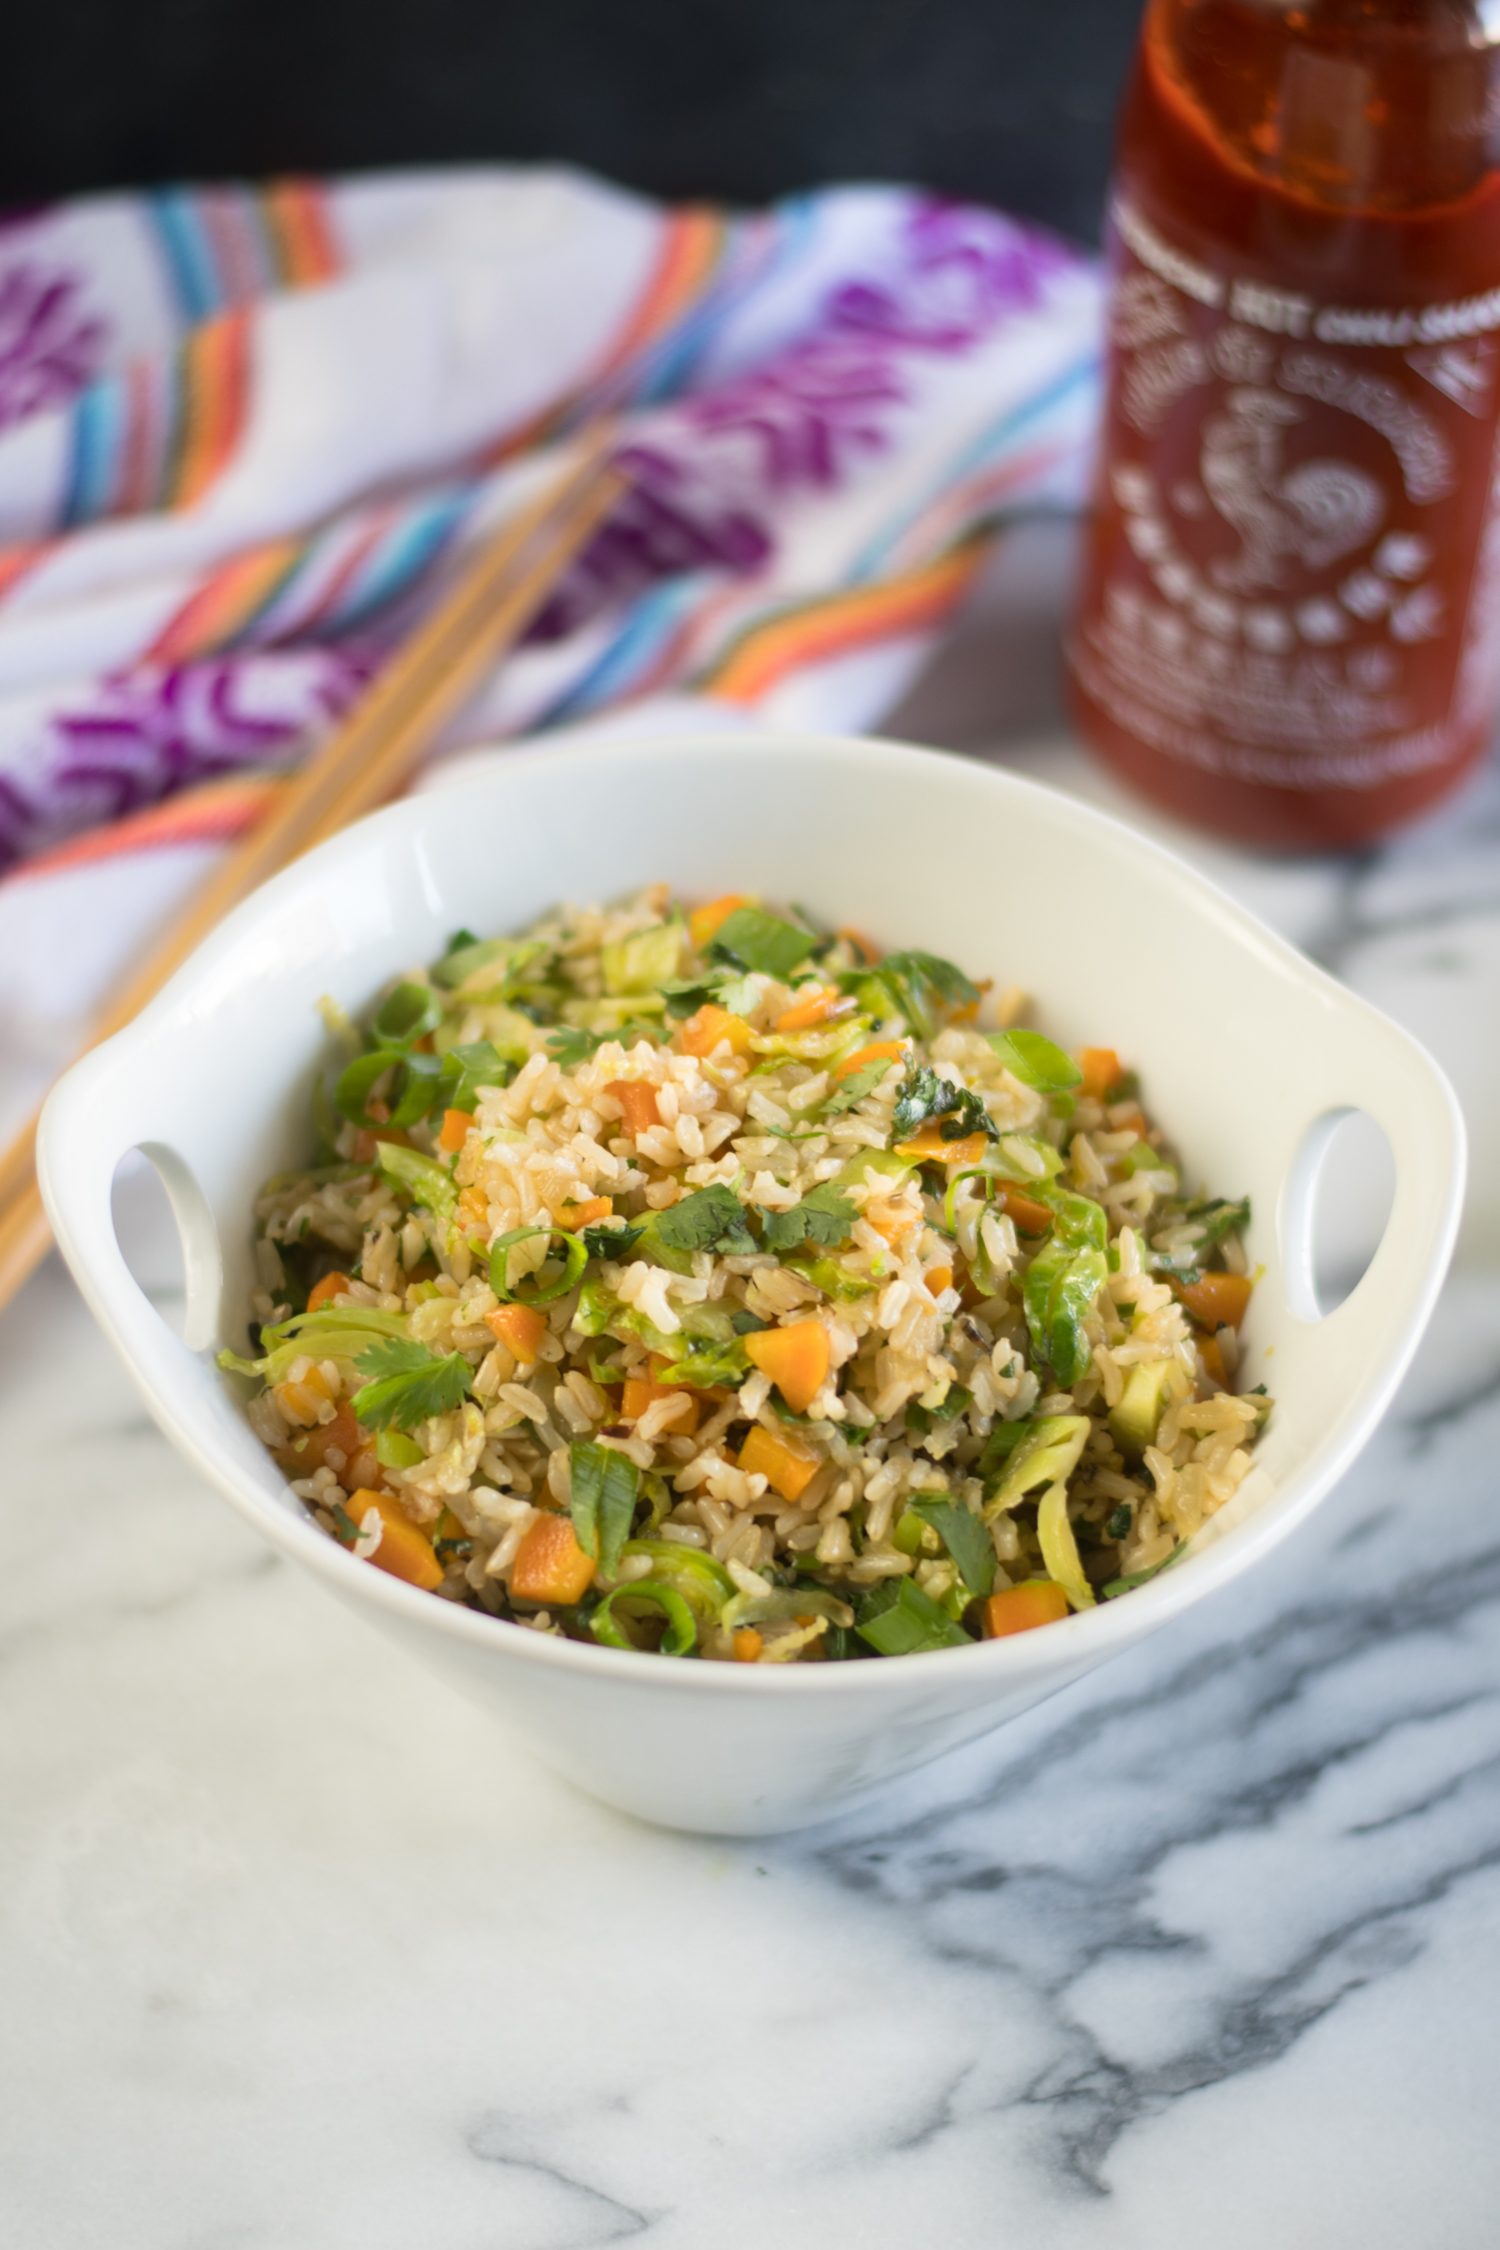 Skip the take-out and make this healthy Vegan Brussel Sprout Fried Rice at home!